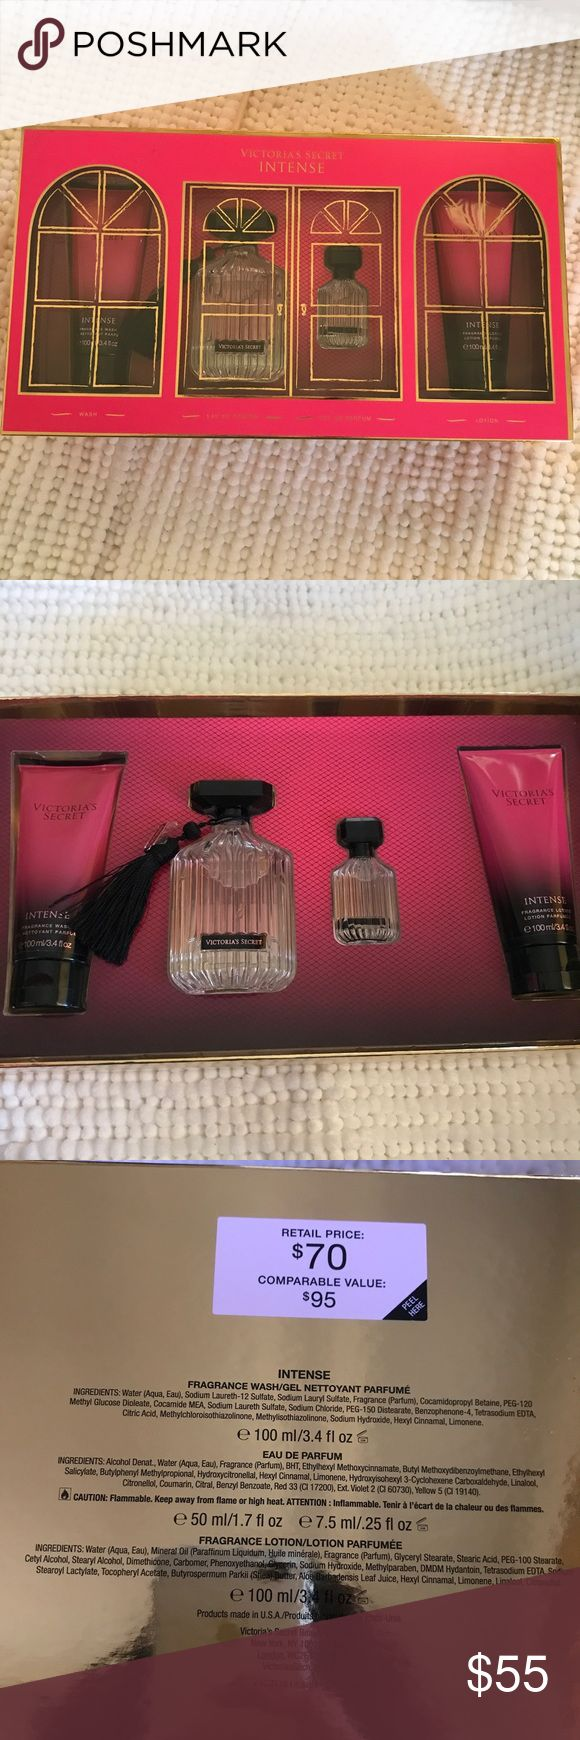 "Victoria secret intense perfume set New Victoria's Secret ""Intense"" Parfum Gift Set Fragrance Wash&Lotion, $95 Value selling for $55 plus shipping  1 - Eau de Parfum - 3.4 FL OZ/100 ML Bottle 1 - Eau de Parfum  - 2.5 FL OZ/7.5 ML Bottle 1 - Fragrance Wash - 3.4 FL OZ/100 ML 1 - Fragrance Lotion - 3.4 FL OZ/100 M Victoria's Secret Other"